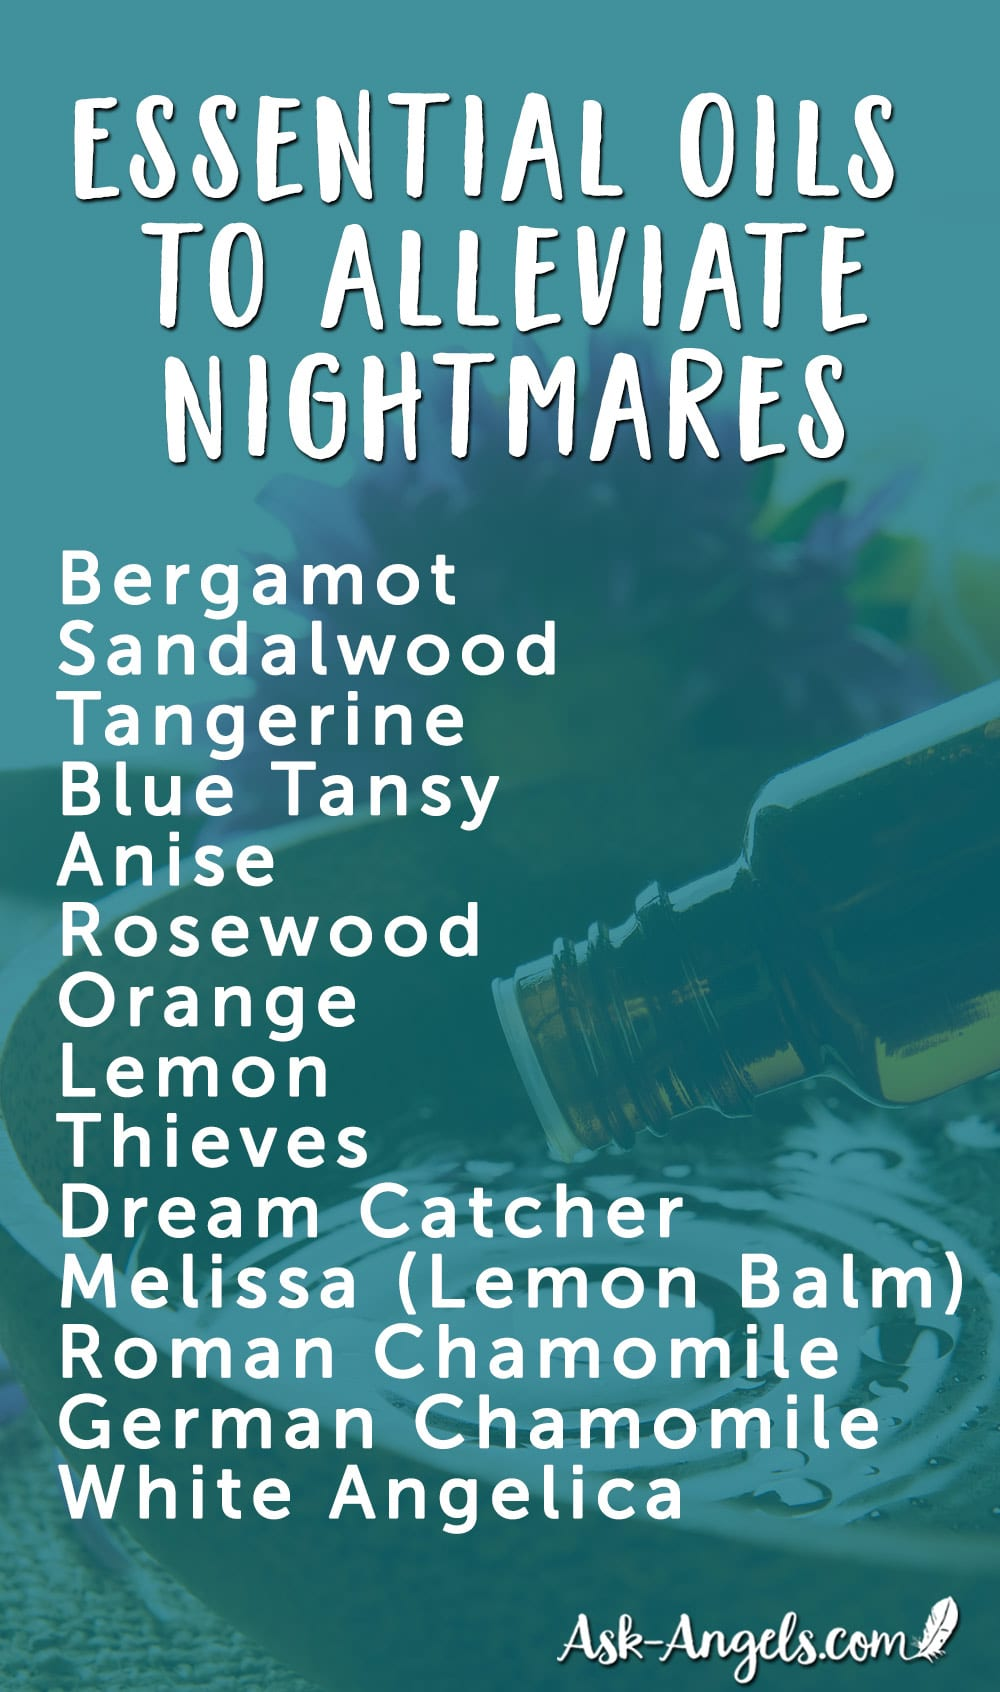 Essential Oils to Alleviate Nightmares